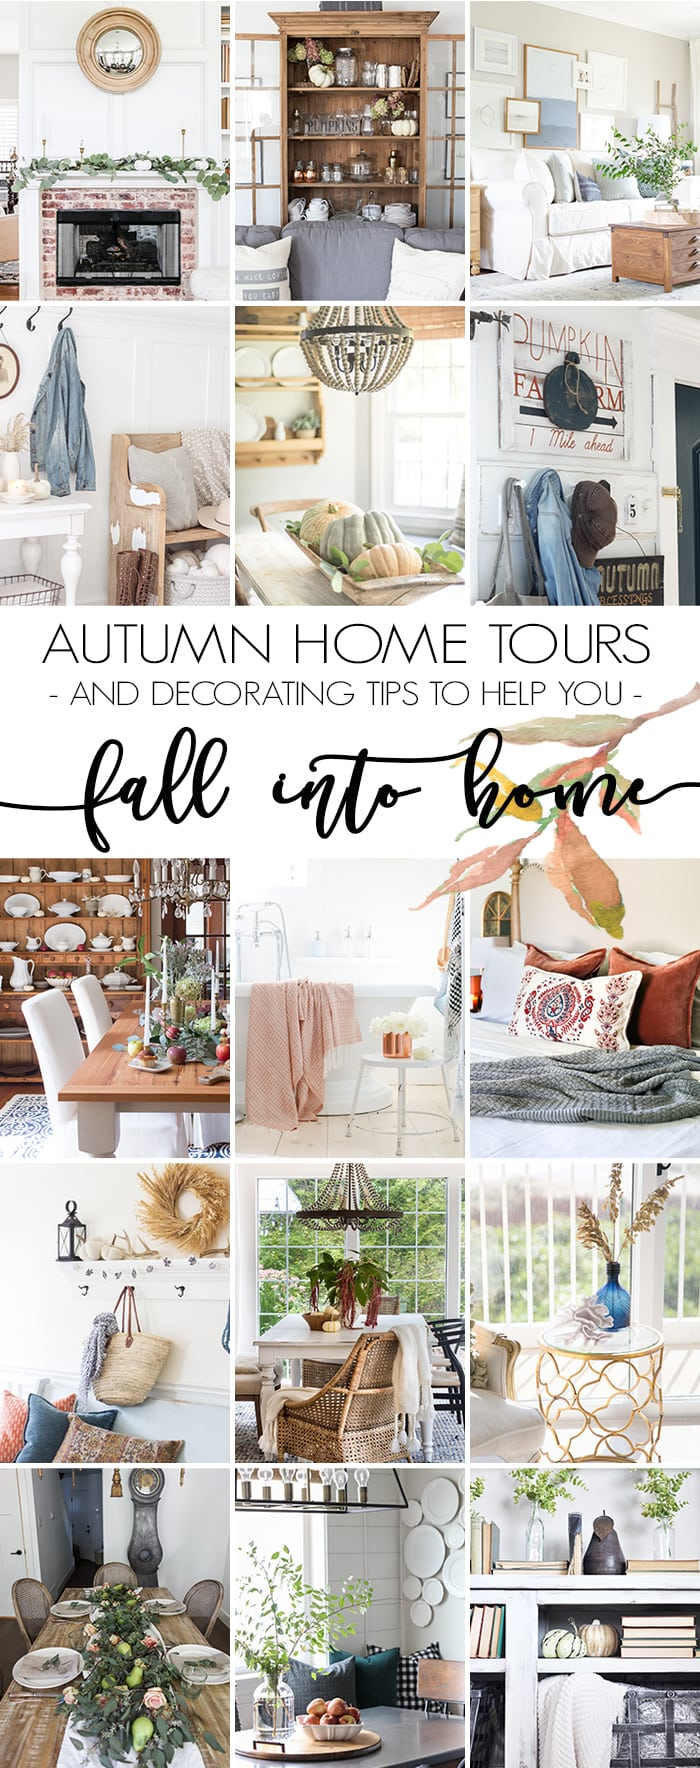 Fall decor with white pumpkins and lots of neutral textures makes for a simple, serene fall look. Don't miss these fall decorating tips and ideas for creating a cozy home. #falldecor